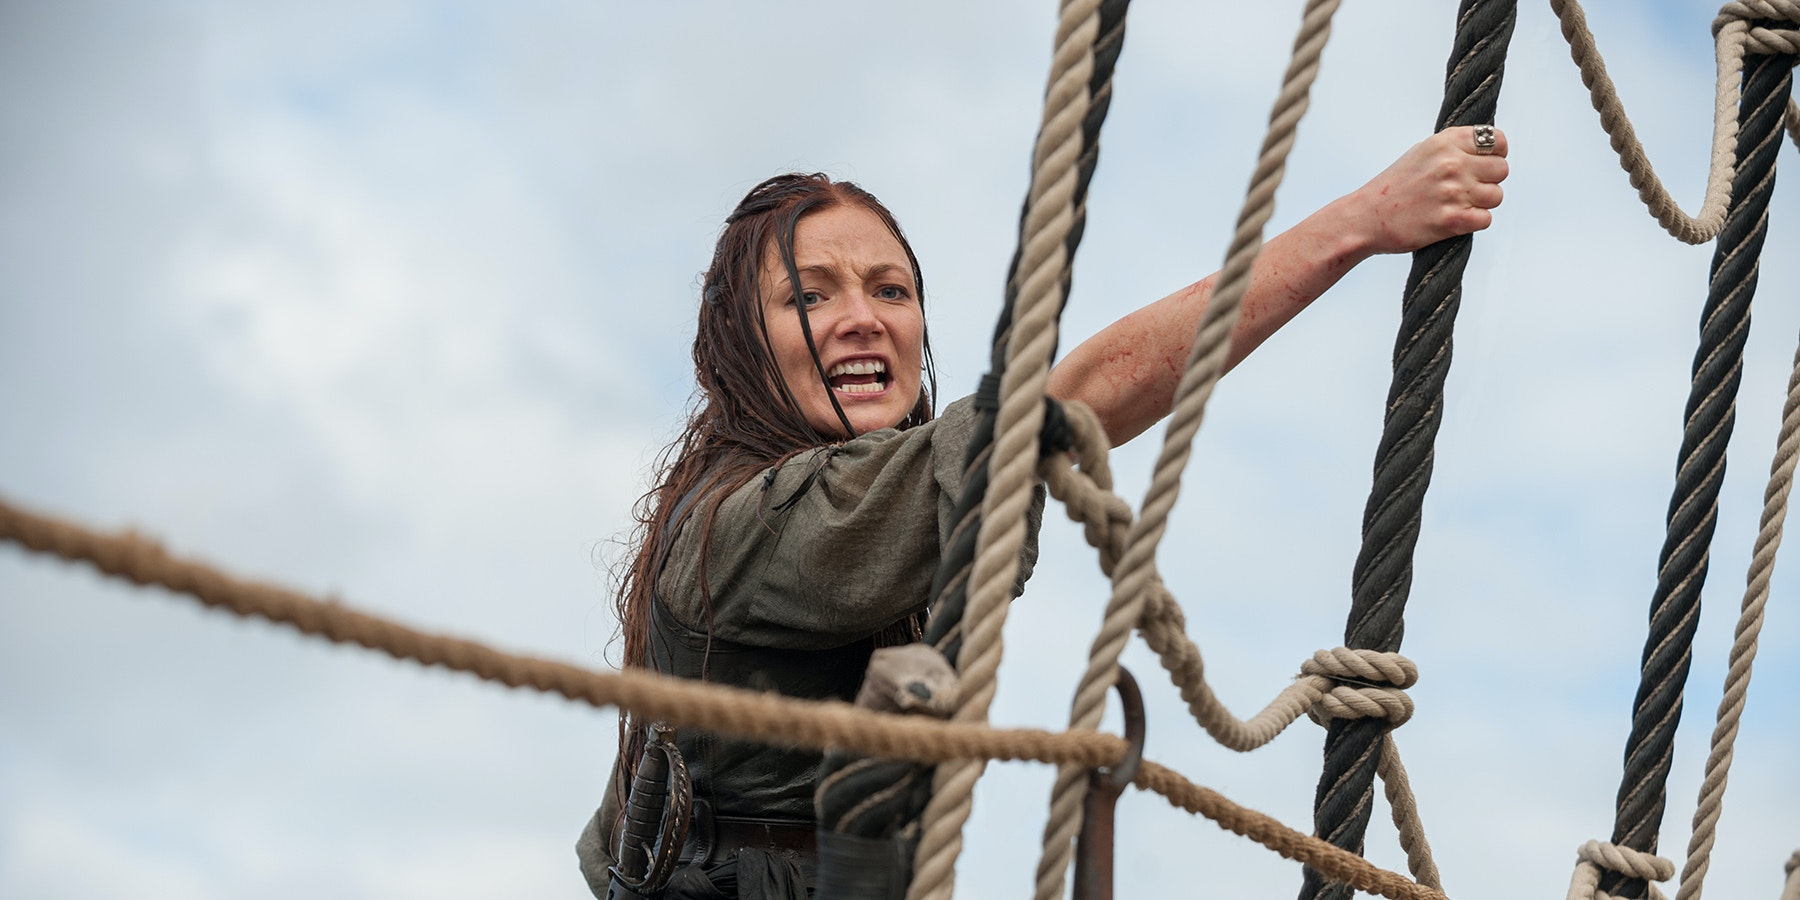 black sails' finale shows that anne bonny's gloves (and hat) are